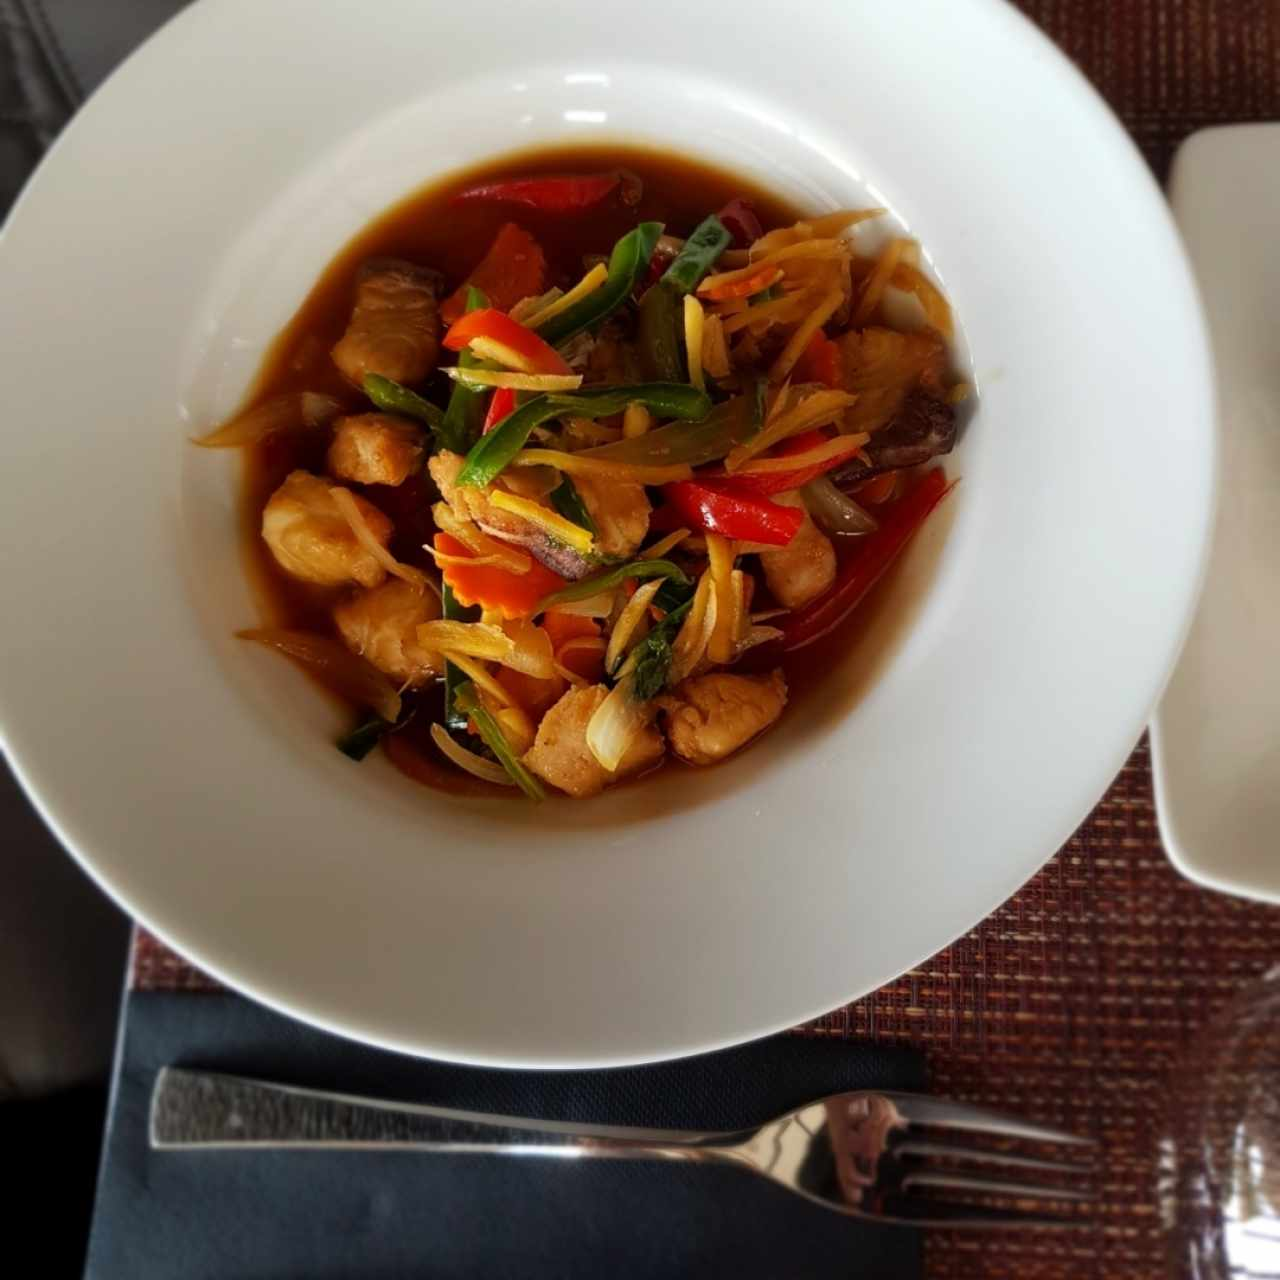 Ginger stir fry with fish